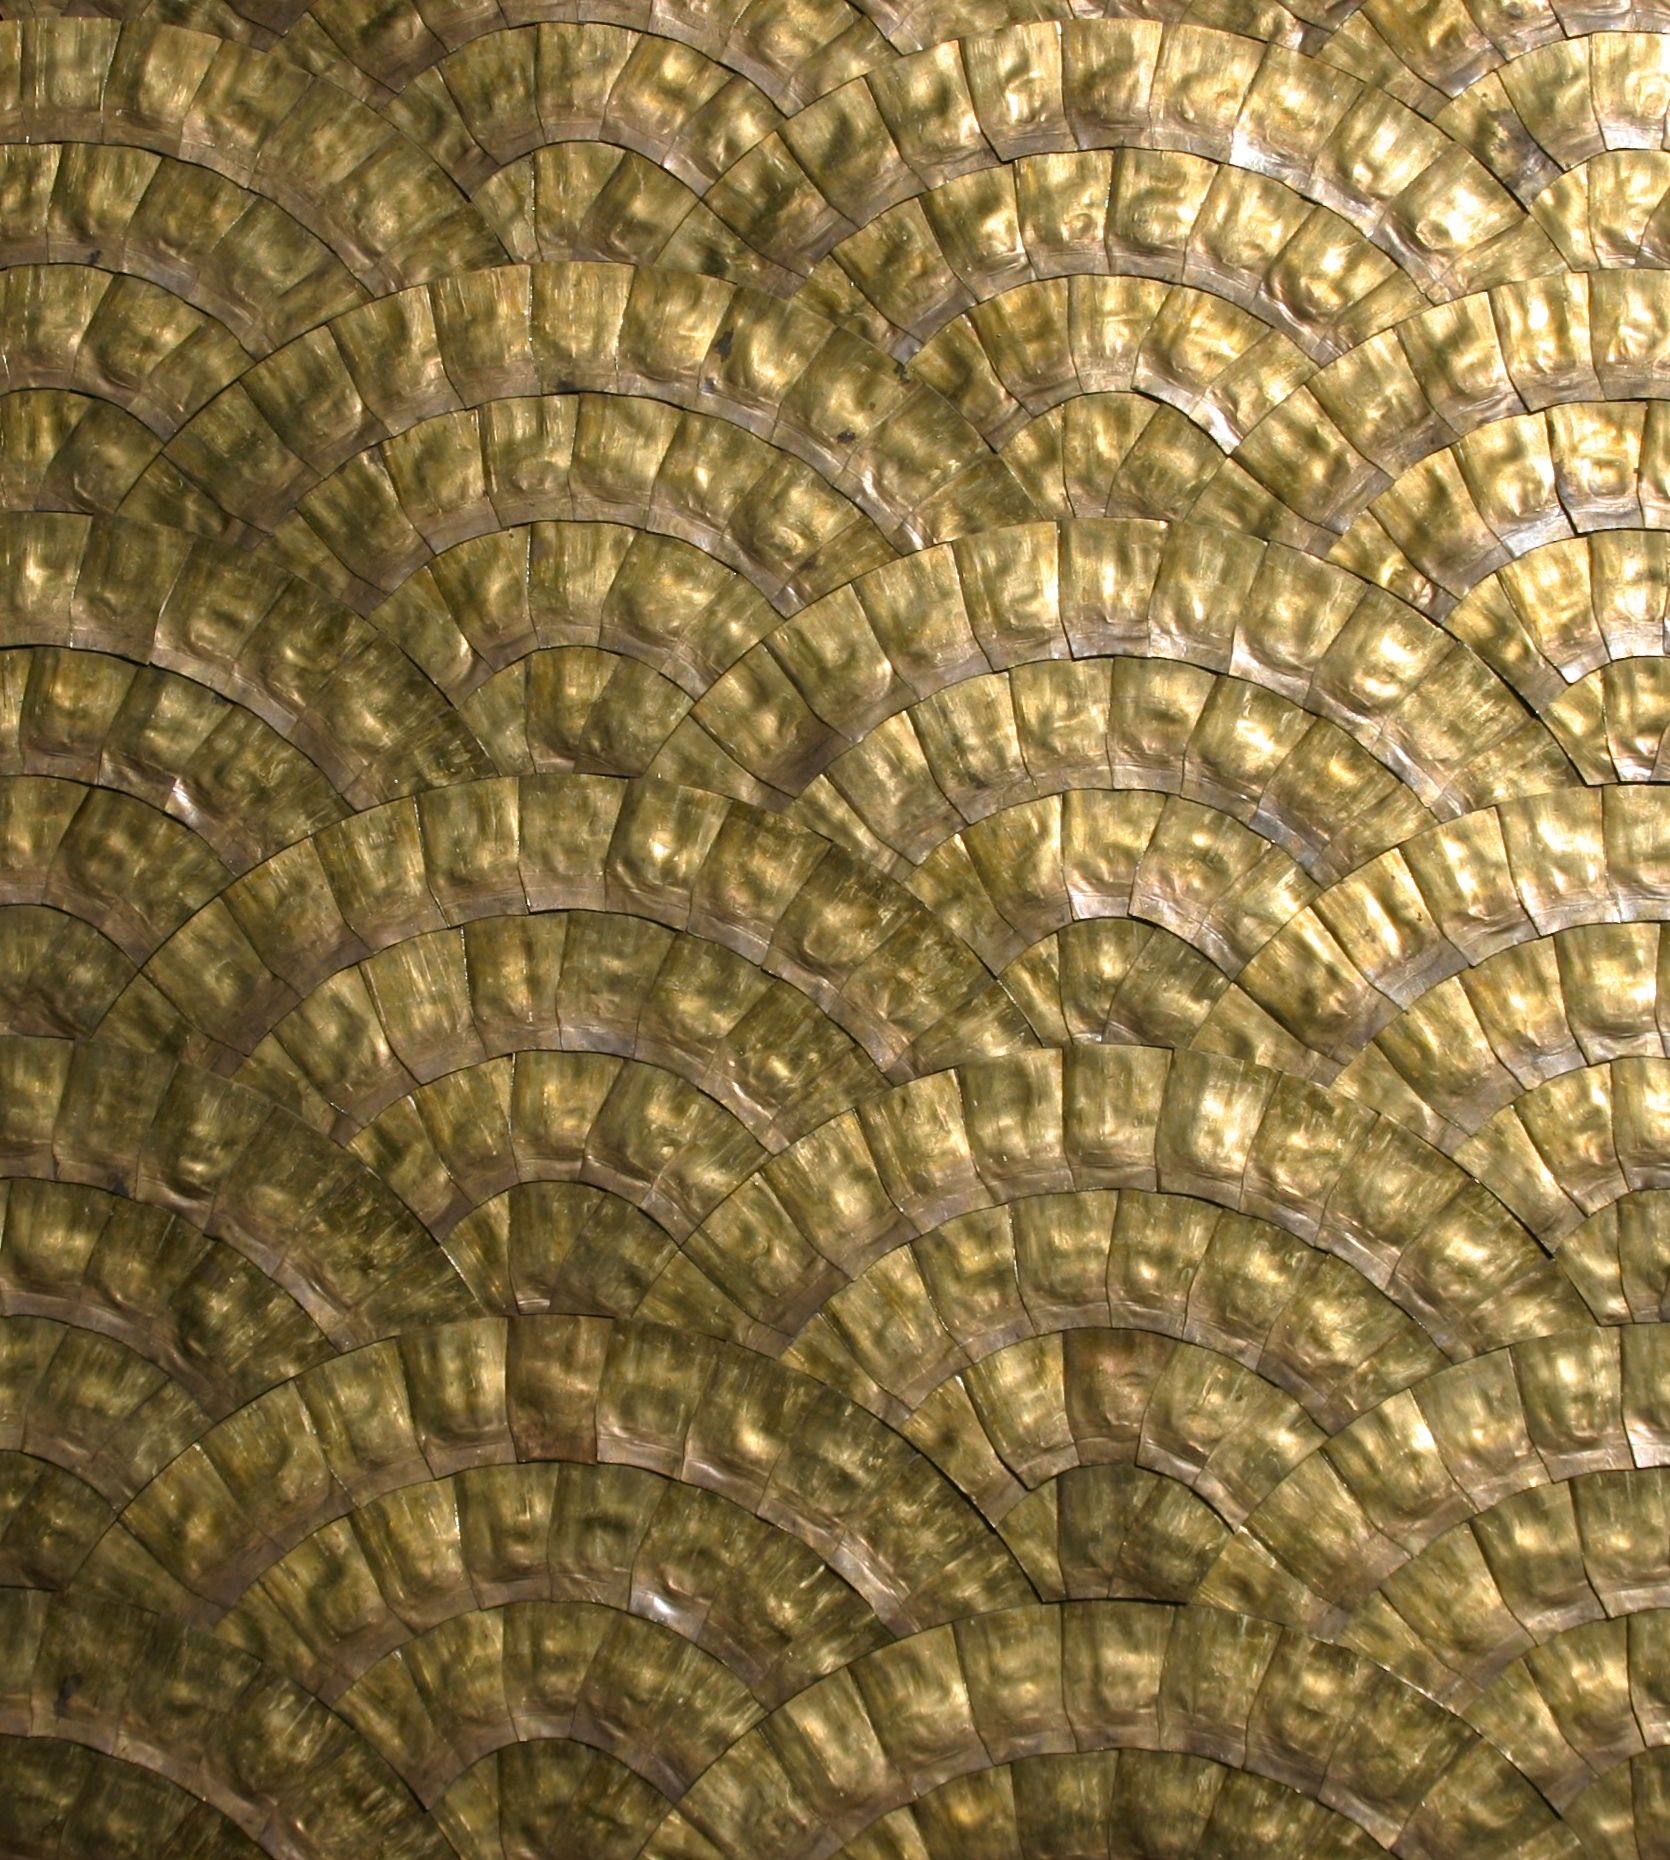 Recycled Brass Bullet Casings In Cobblestone Pattern In